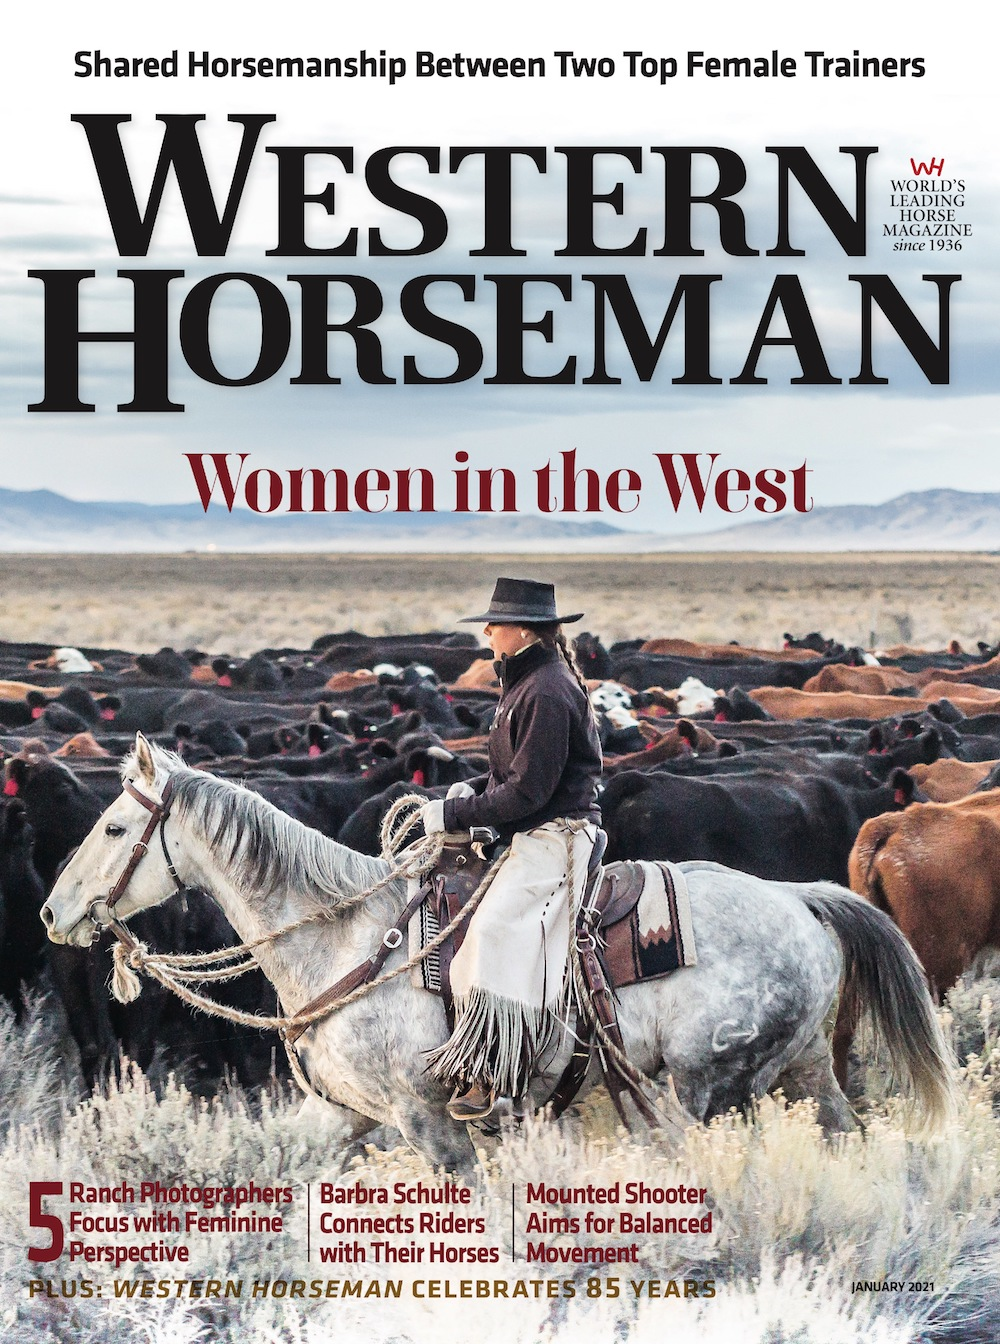 Western Horseman magazine January 2021 cover